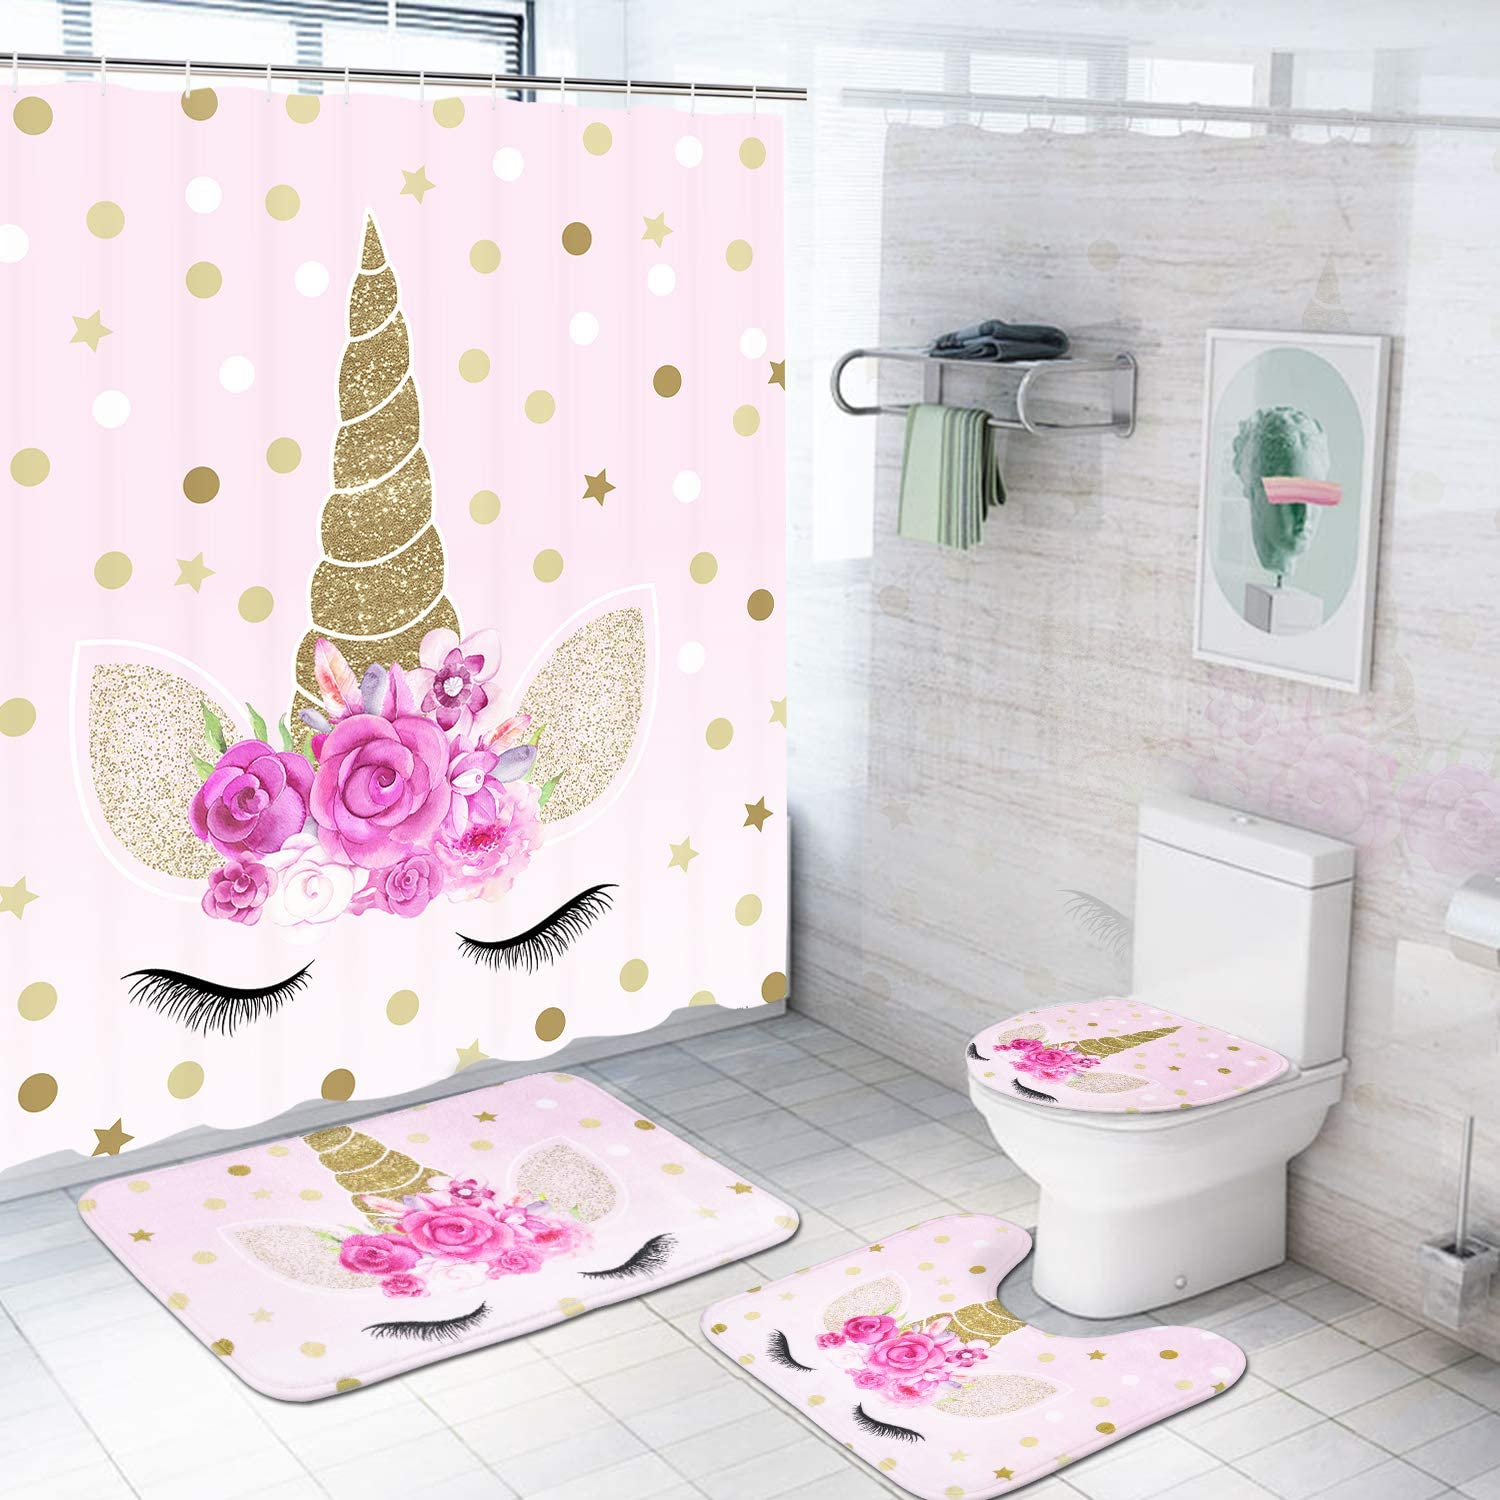 Romeooera 10 Piece Unicorn Shower Curtain Sets with Non Slip Rugs, Toilet  Lid Cover and Bath Mat, Pink Unicorn Shower Curtain Waterproof with 10  Hooks